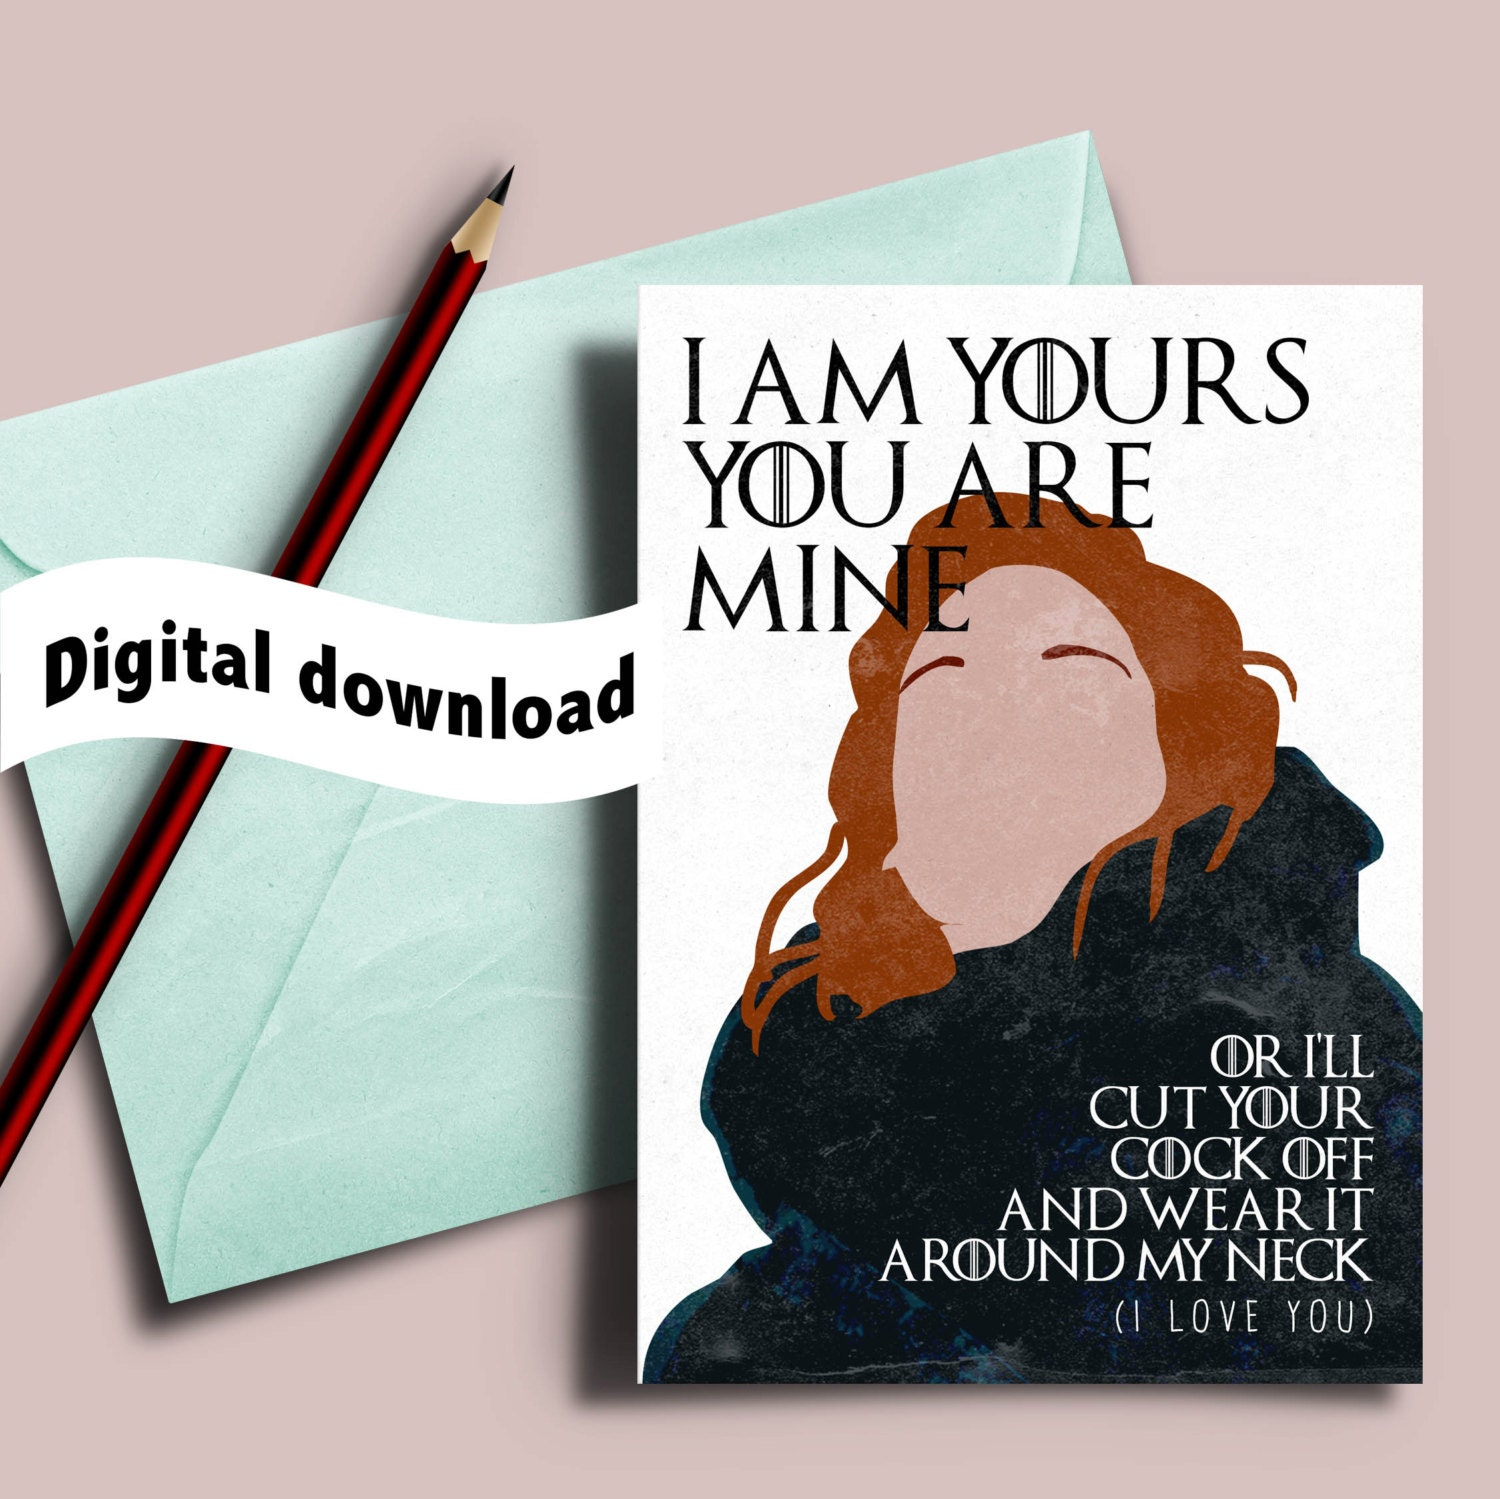 Printable Game of Thrones card Ygritte Jon Snow I am yours